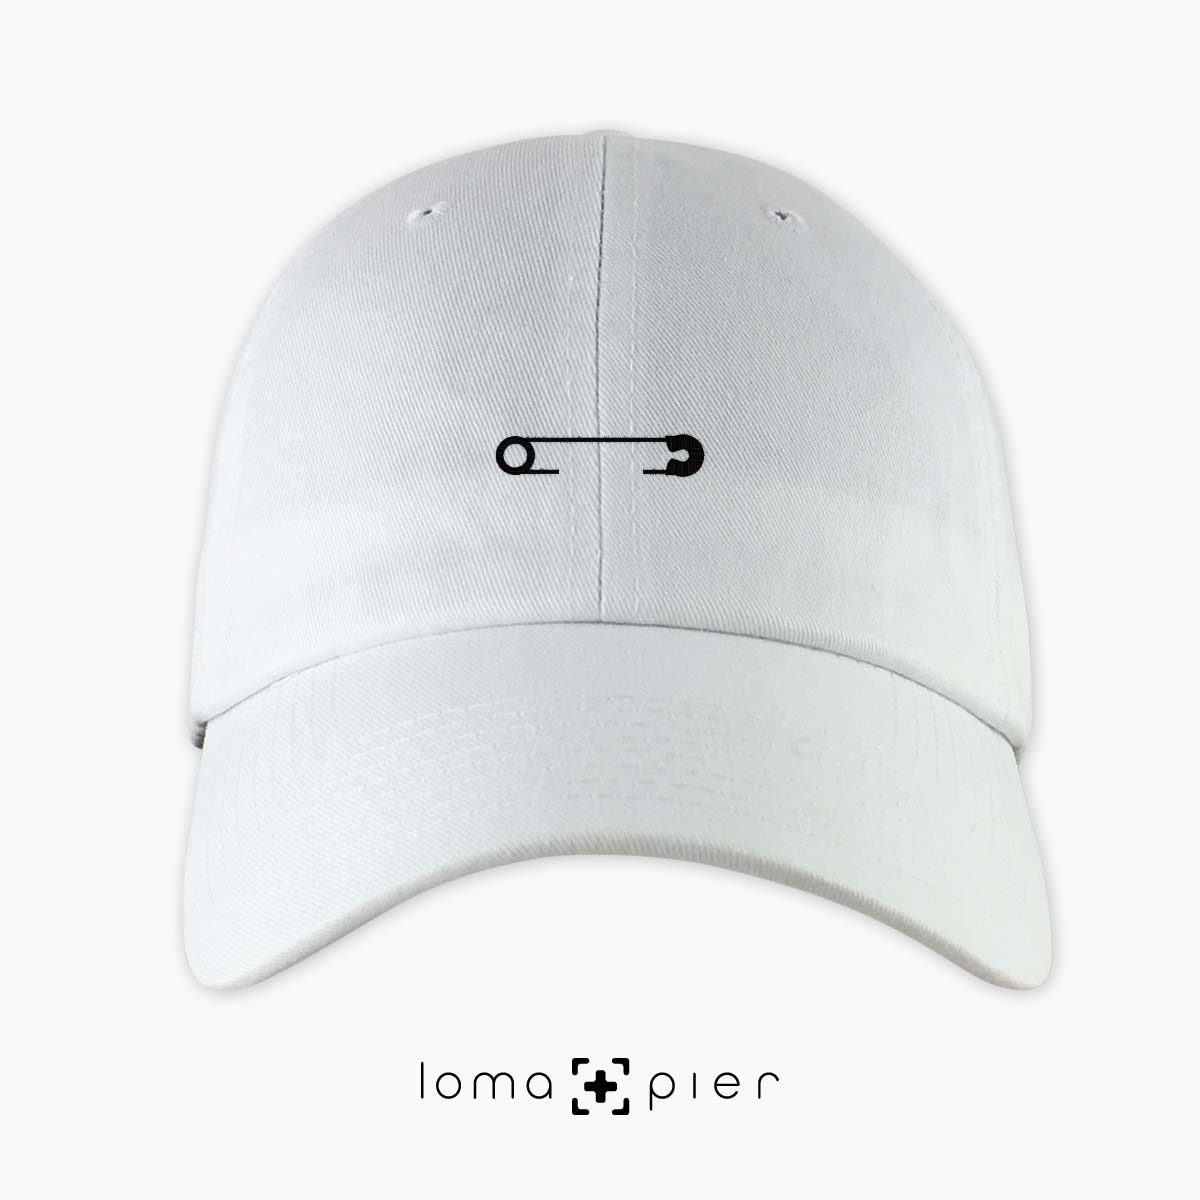 SAFETY PIN icon embroidered on a white unstructured dad hat with black thread by loma+pier hat store made in the USA